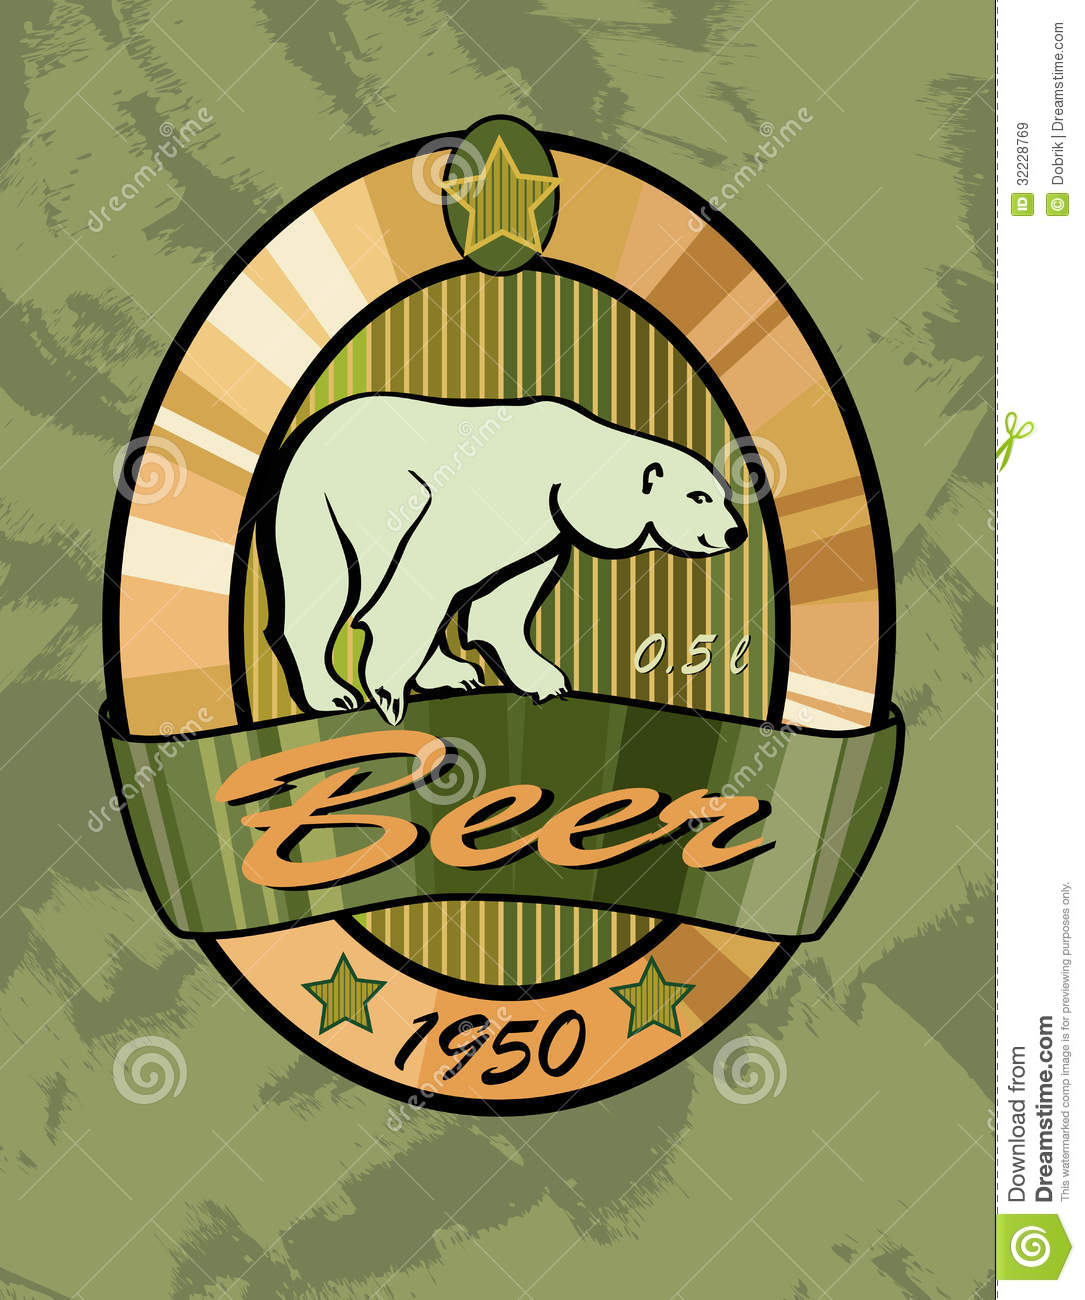 Beer Label Design Polar Bear Stock Vector